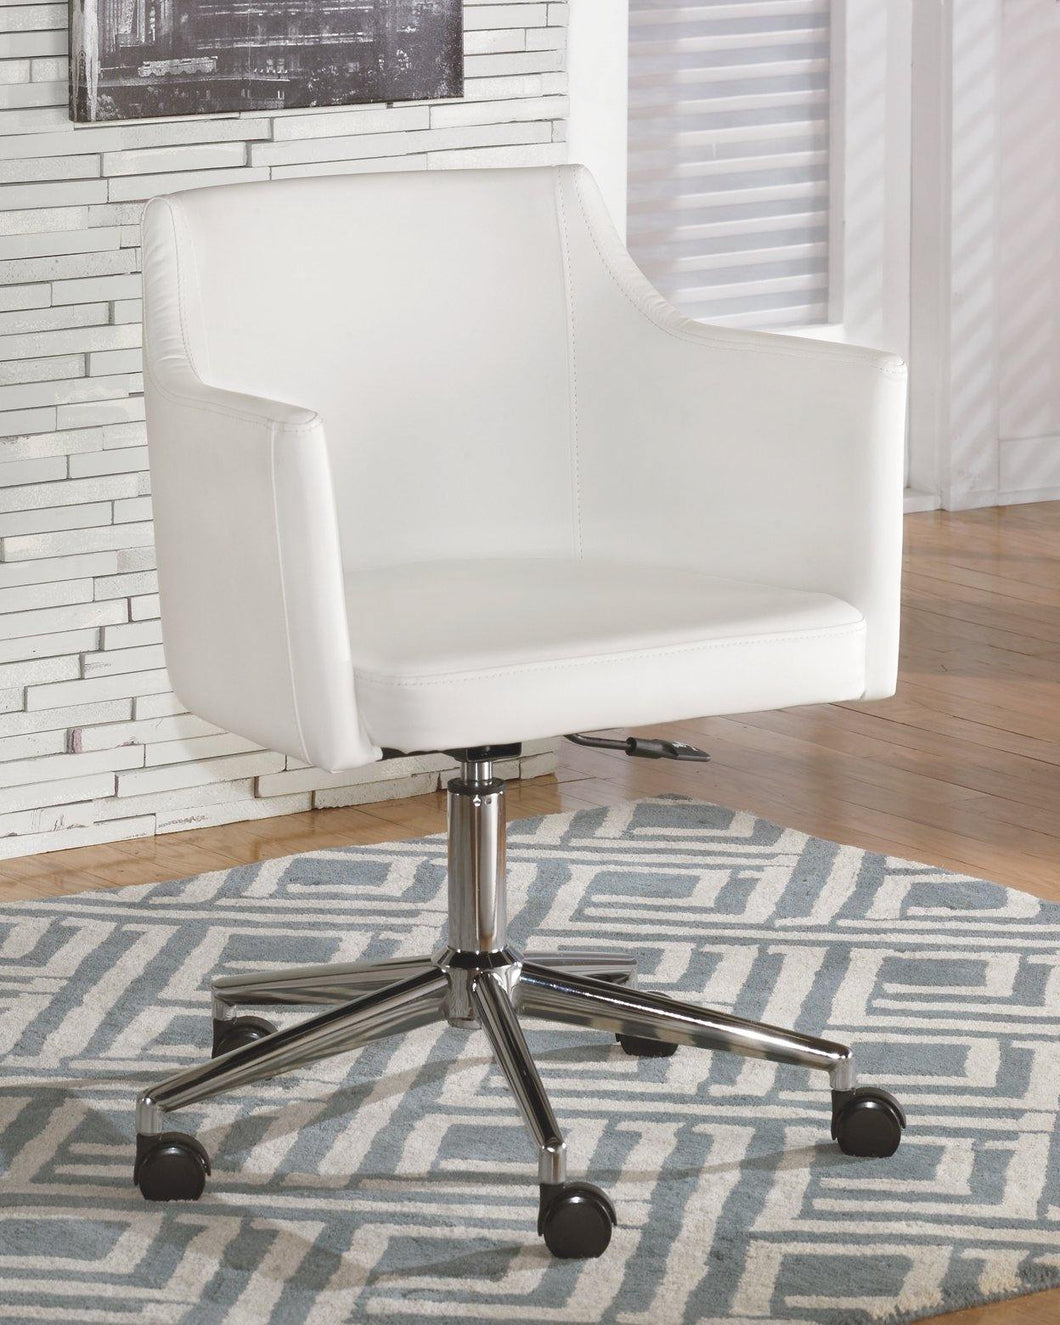 Baraga Home Office Desk Chair H410-01A By Ashley Furniture from sofafair